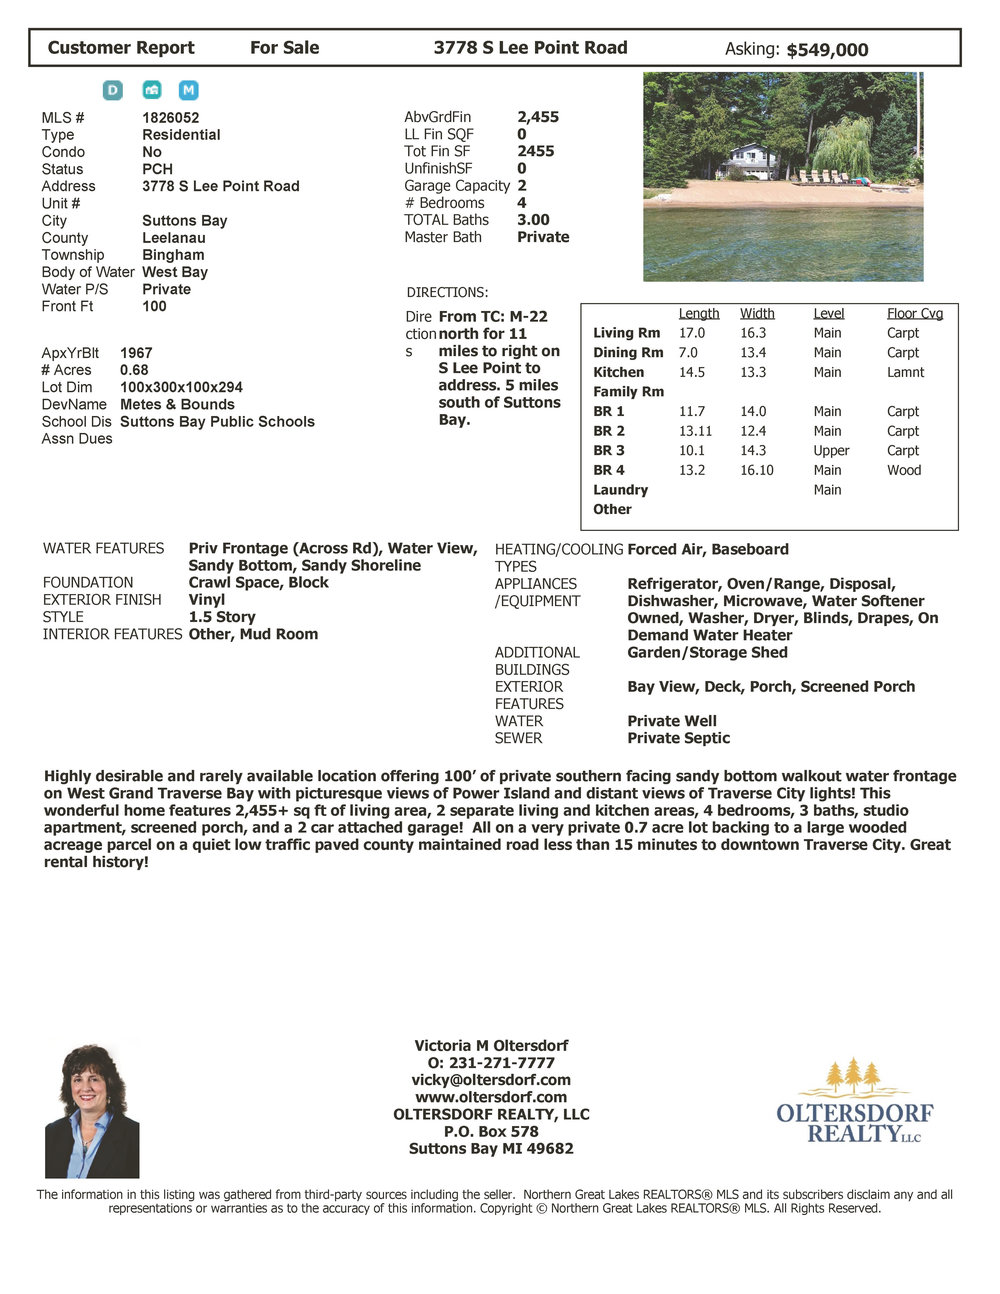 3778 S Lee Point Road, Suttons Bay waterfront home on West Grand Traverse Bay - Price Reduced.jpg